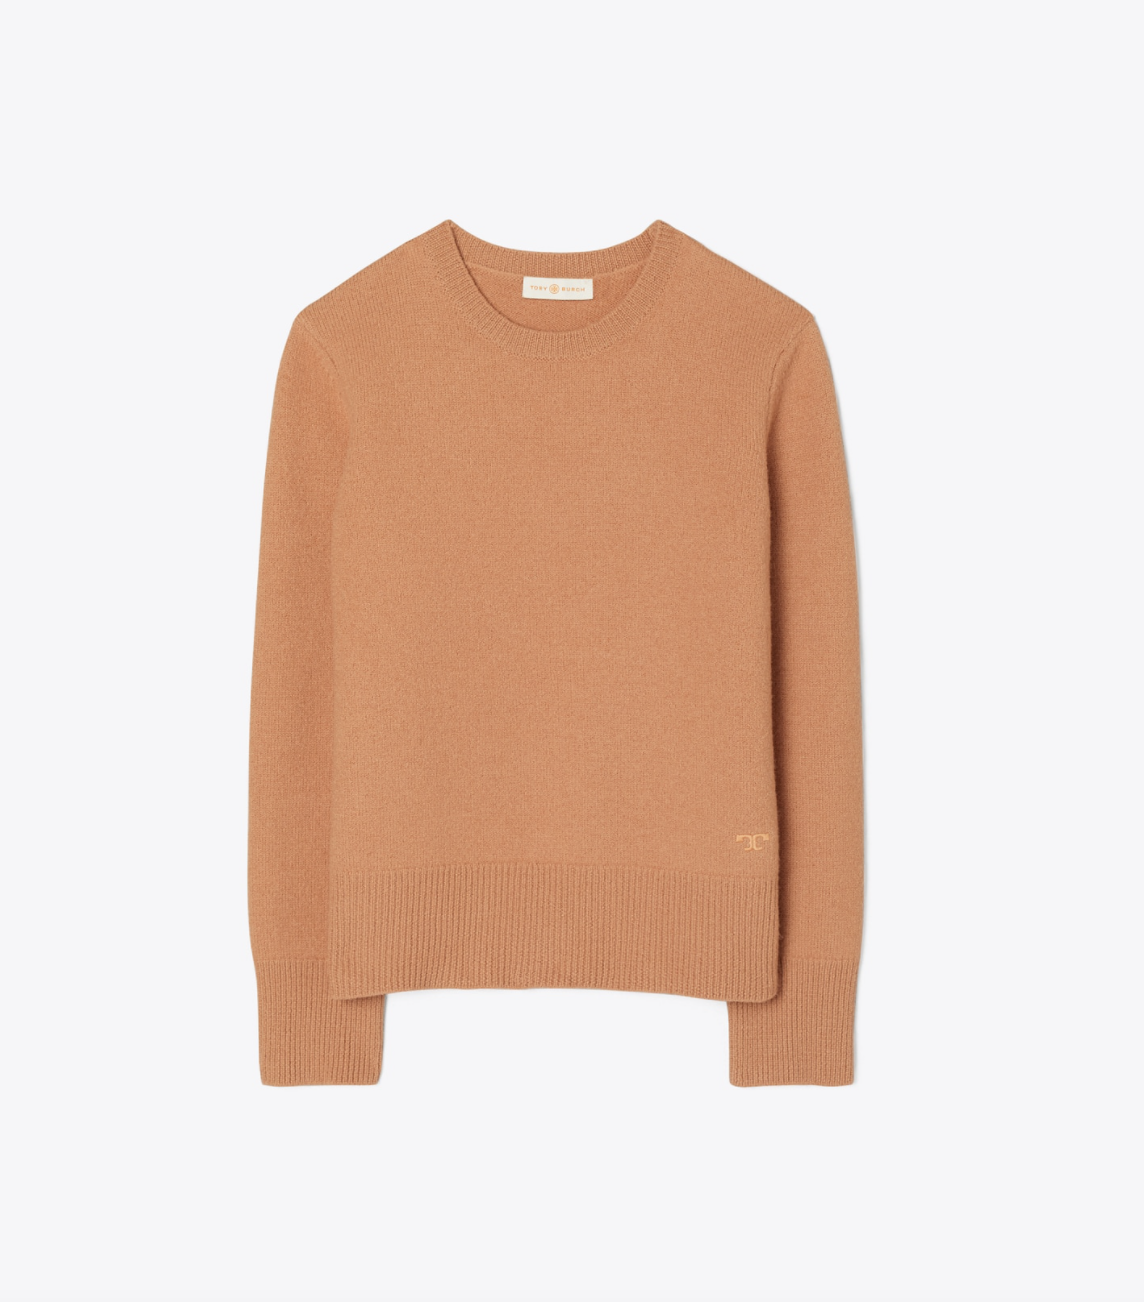 Tory Burch Felted Merino Wool Crewneck Sweater